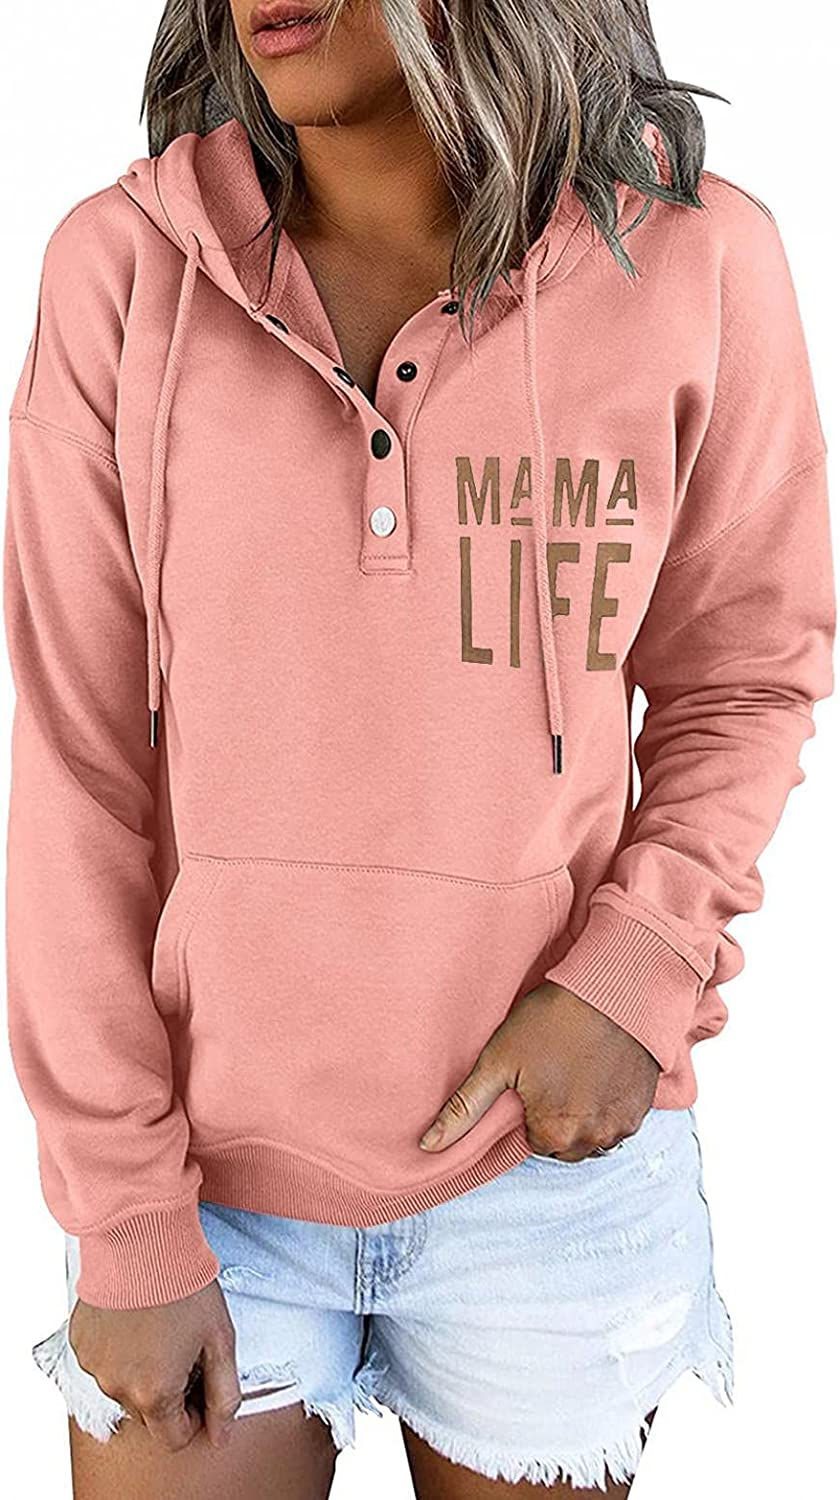 Hoodies for Women Pullover Tops Casual Button Down Long Sleeve Tops Drawstring Sweatshirts with Pocket